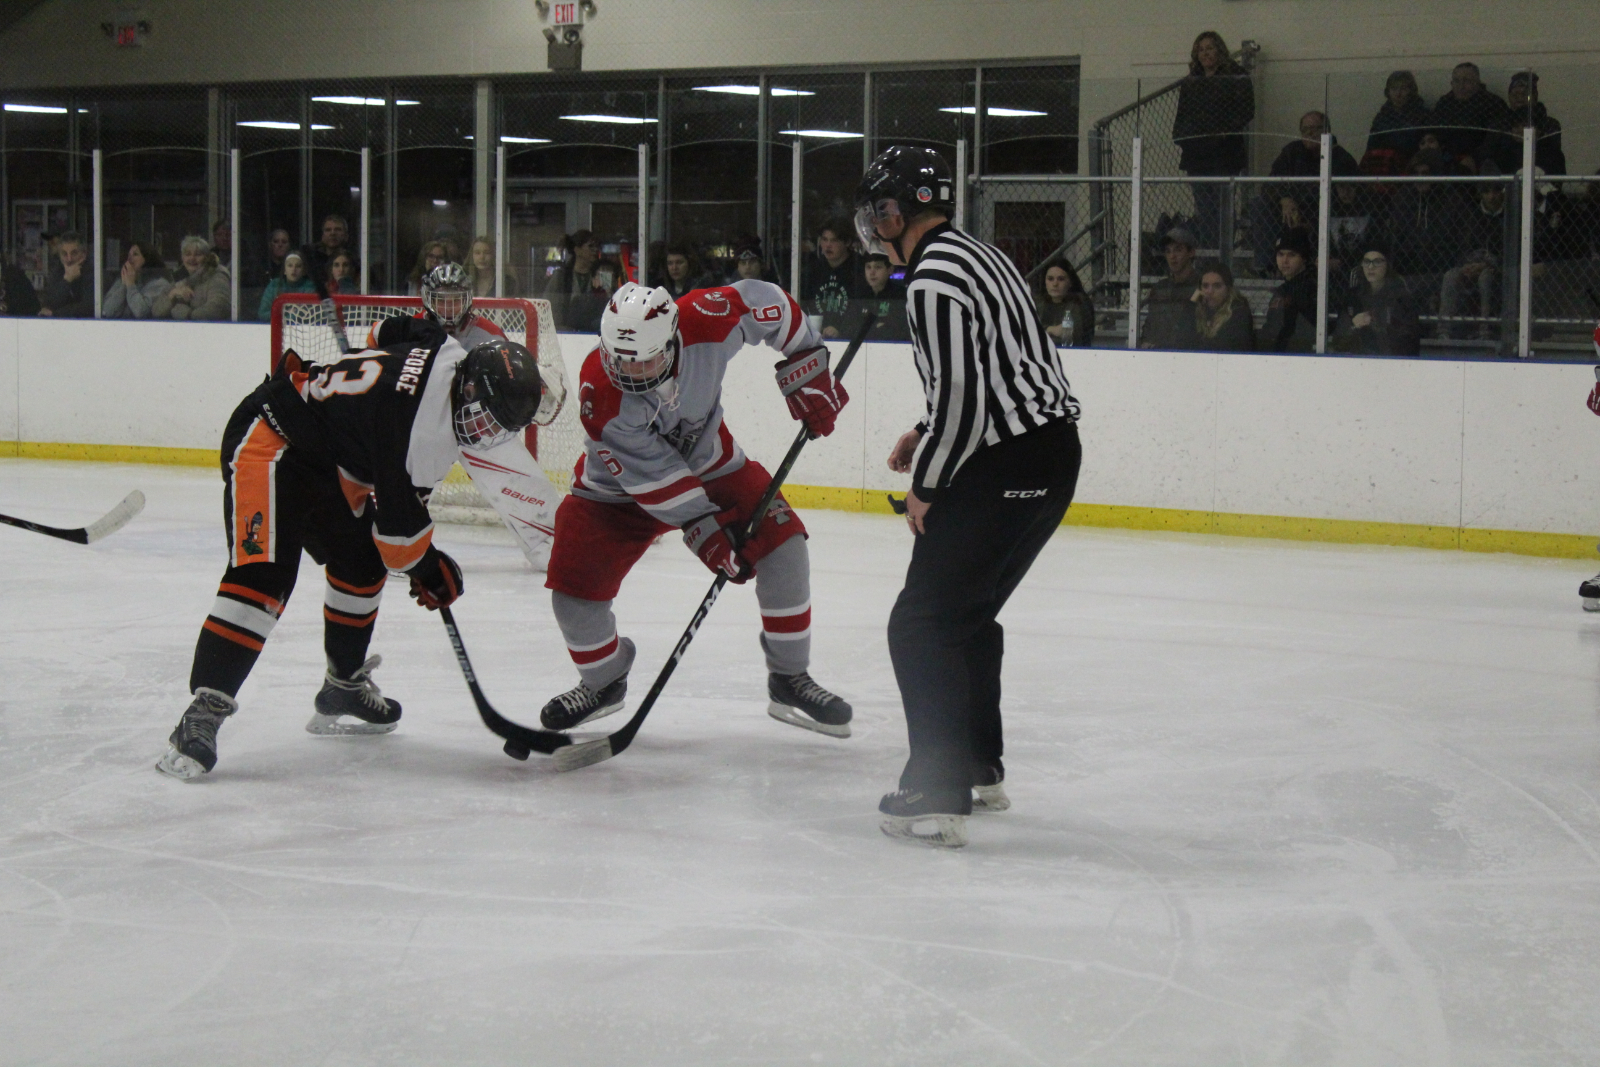 11/22/2019 Hockey vs. Parma